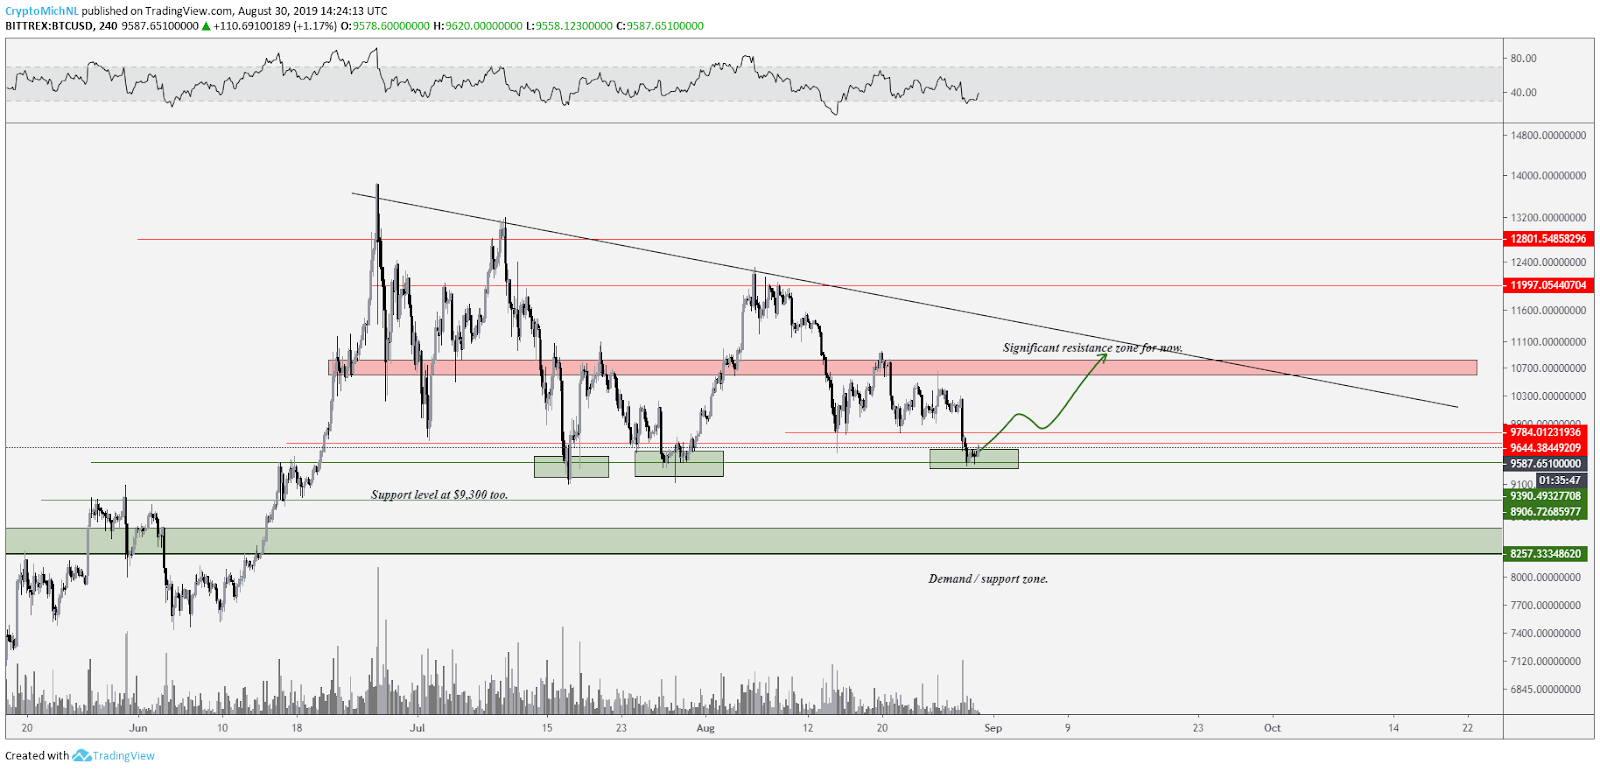 BTC/USD bullish scenario. Source: Tradingview